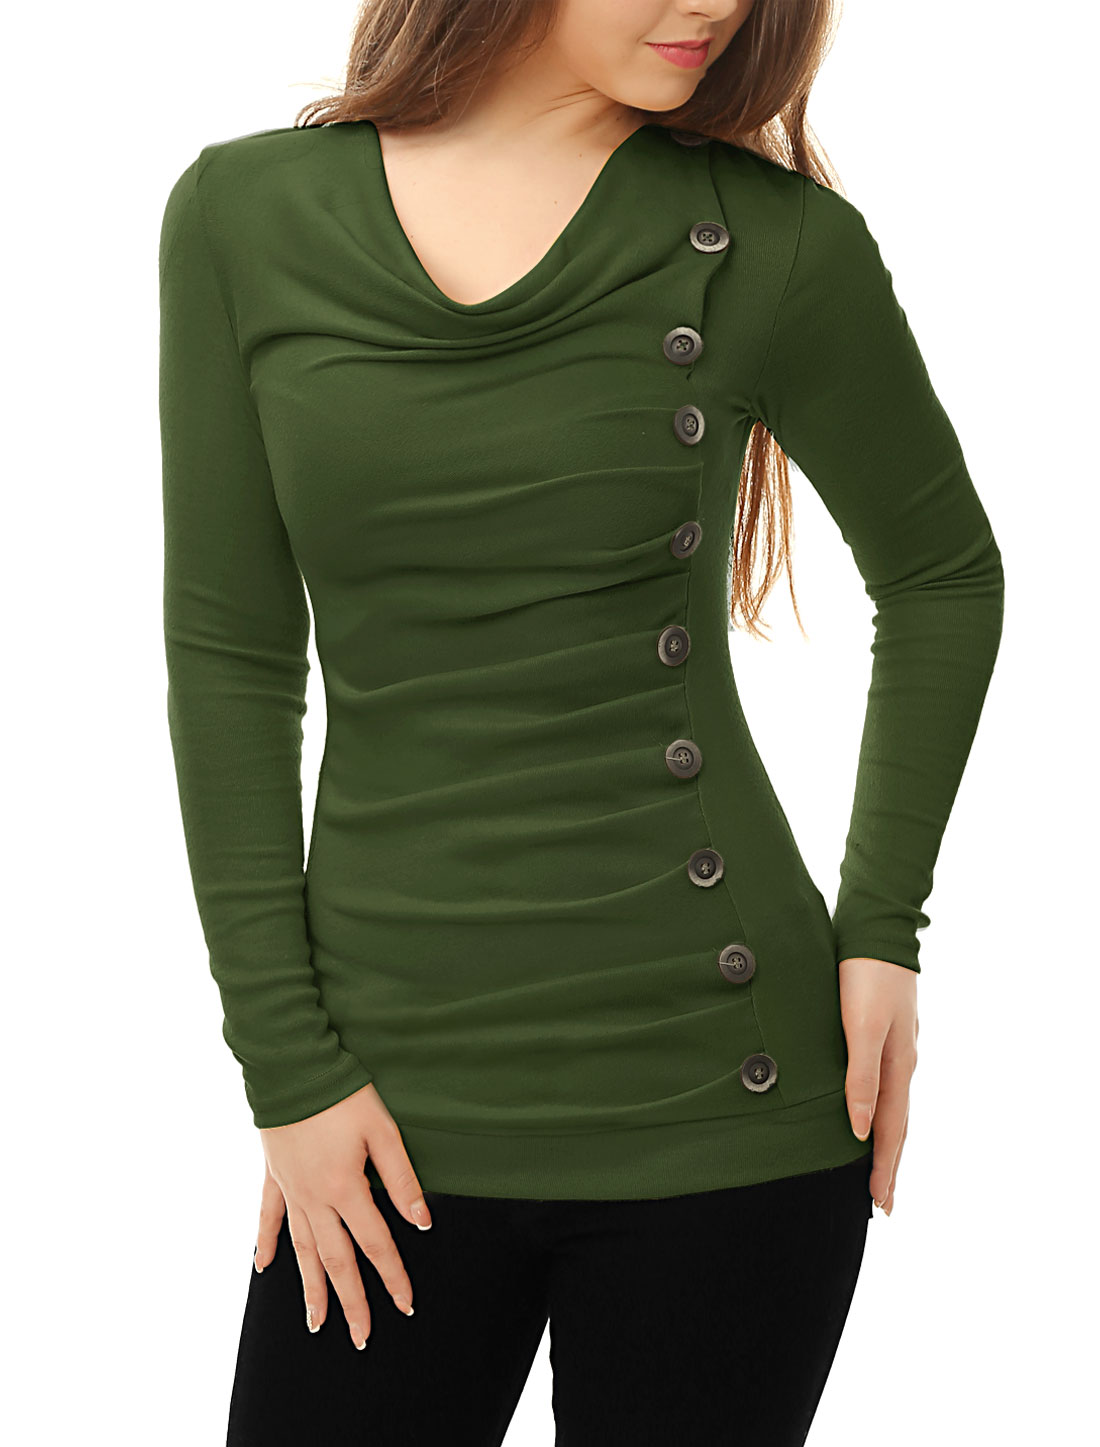 Allegra K Women Cowl Neck Long Sleeves Buttons Decor Ruched Top Green M